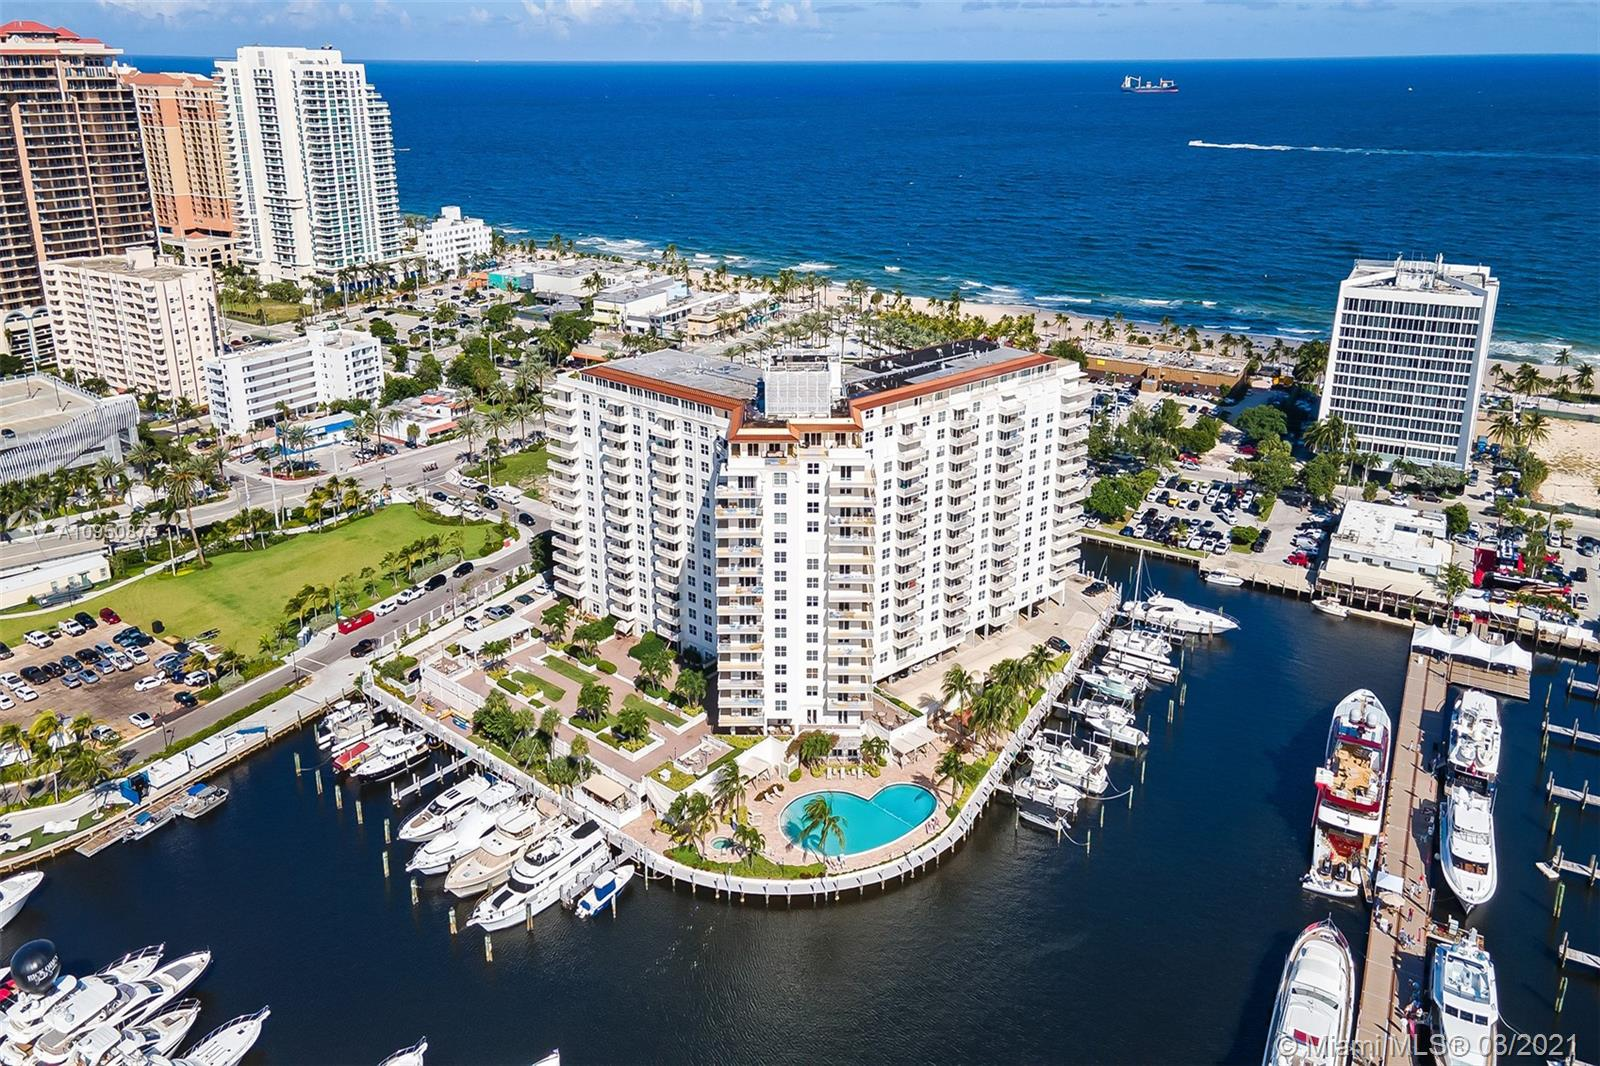 LIVE THE WATERFRONT LIFESTYLE AT THE OCEAN IN DOWNTOWN FORT LAUDERDALE*BEAUTIFUL BALCONY WITH OCEAN, BEACH & WATER VIEWS IN EVERY DIRECTION*EAST VIEW TO ATLANTIC OCEAN & PARK*MARINA WITH DOCK AVAILABLE UP TO 80 FT, NO FIXED BRIDGES, ACCESS TO INTERCOASTAL & OCEAN*COMMUNITY DOCK FOR RENT*THE VENETIAN FEATURES LUXURY RESORT STYLE LIVING*WALK TO THE BEACH & NEW PARK*10 MINUTES TO FLL AIRPORT*ENJOY TIKI BAR, BBQ, SPA, POOL, GARDENS, FREE WIFI, 24HR SECURITY, TABLE TENNIS, BILLARD, SHUFFLEBOARD, EXPANSIVE FITNESS CENTER*ENJOY THE DOWNTOWN RESTAURANTS, ENTERTAINMENT, SHOPPING, FARMERS MARKET & BUSINESS DISTRICT*2 BED/2 BATH 1,500sqft UNIT FEATURES SPLIT BEDROOM FLOORPLAN*PORCELAIN TILE*FULLY FURNISHED, IF BUYER DESIRES*VACANT & READY TO SHOW